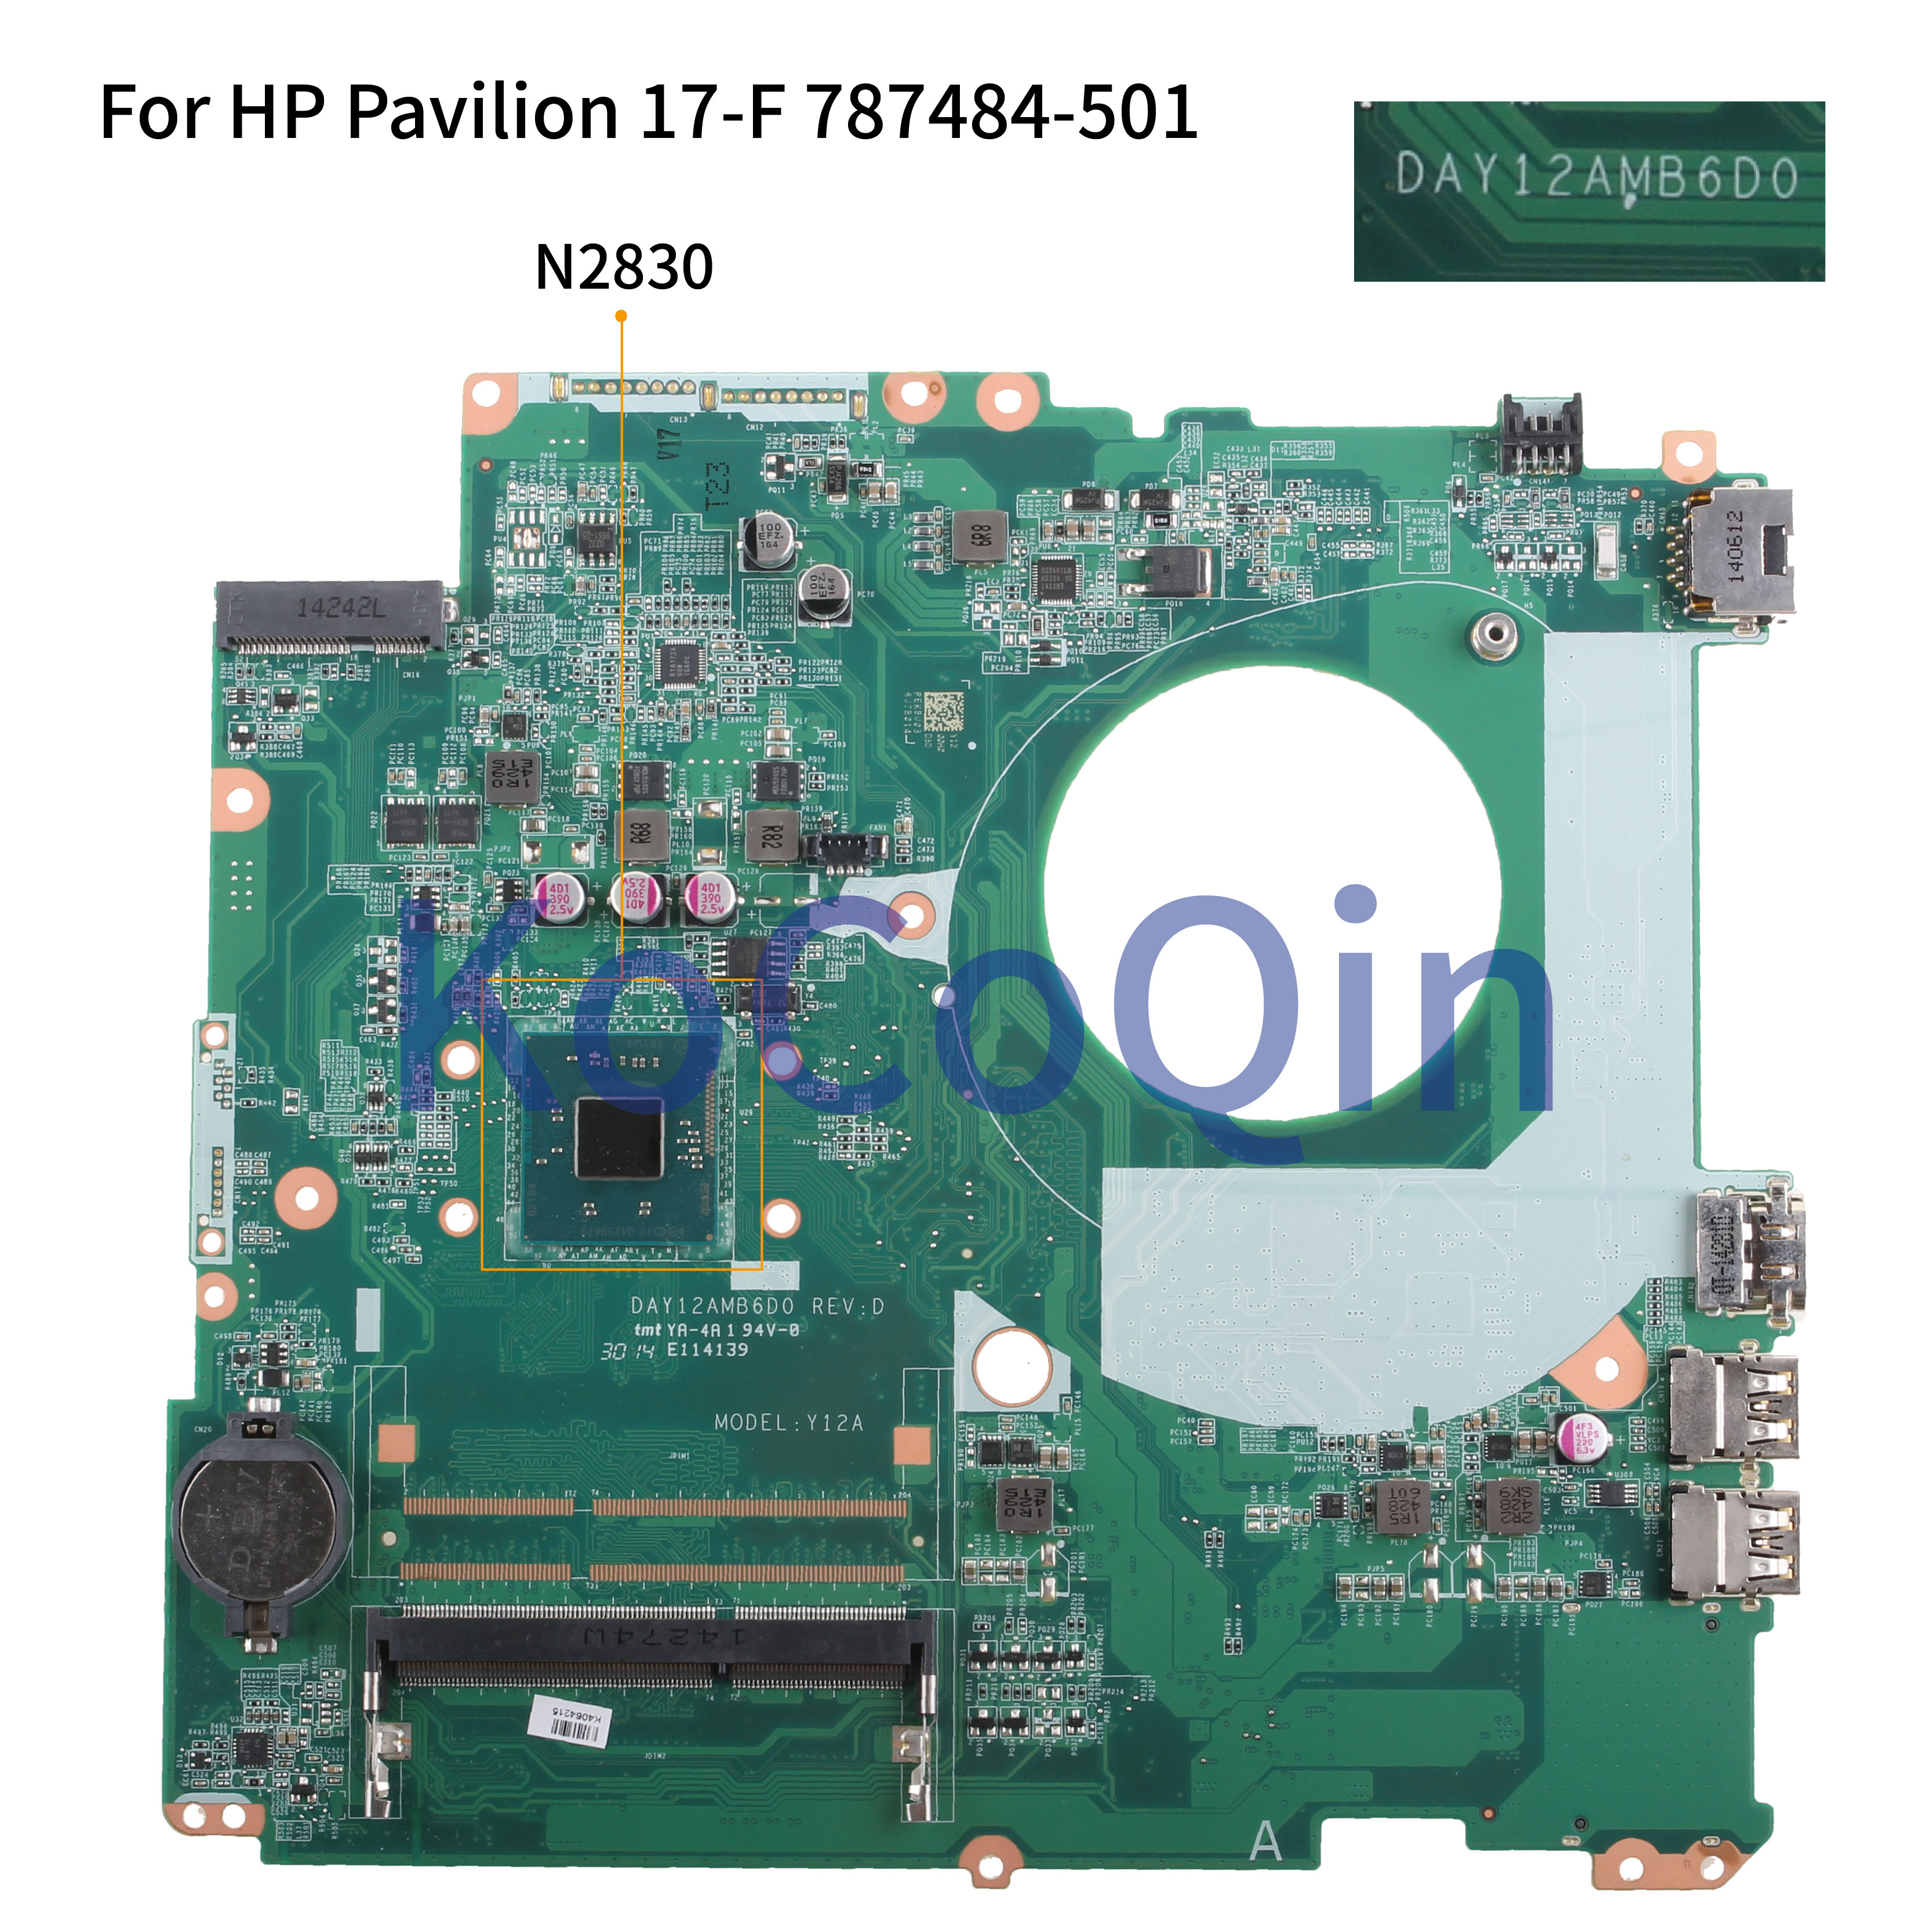 KoCoQin Laptop Motherboard For HP Pavilion 17-F 17' Inch Core N2830 Mainboard 787484-001 787484-501 DAY12AMB6D0 SR1W4